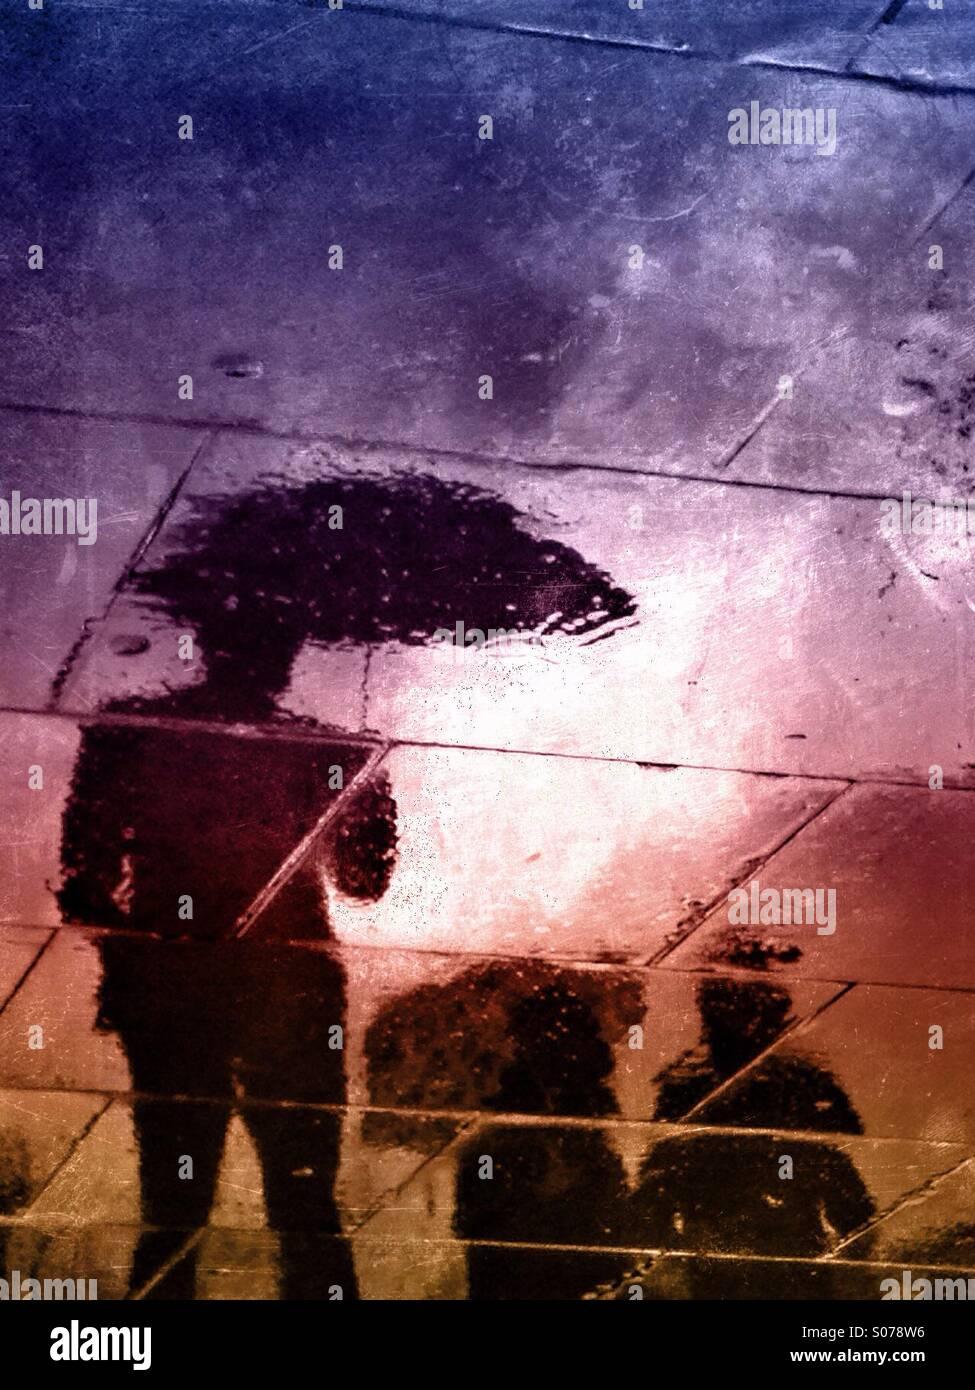 People_with_umbrellas_reflected_on_the_w